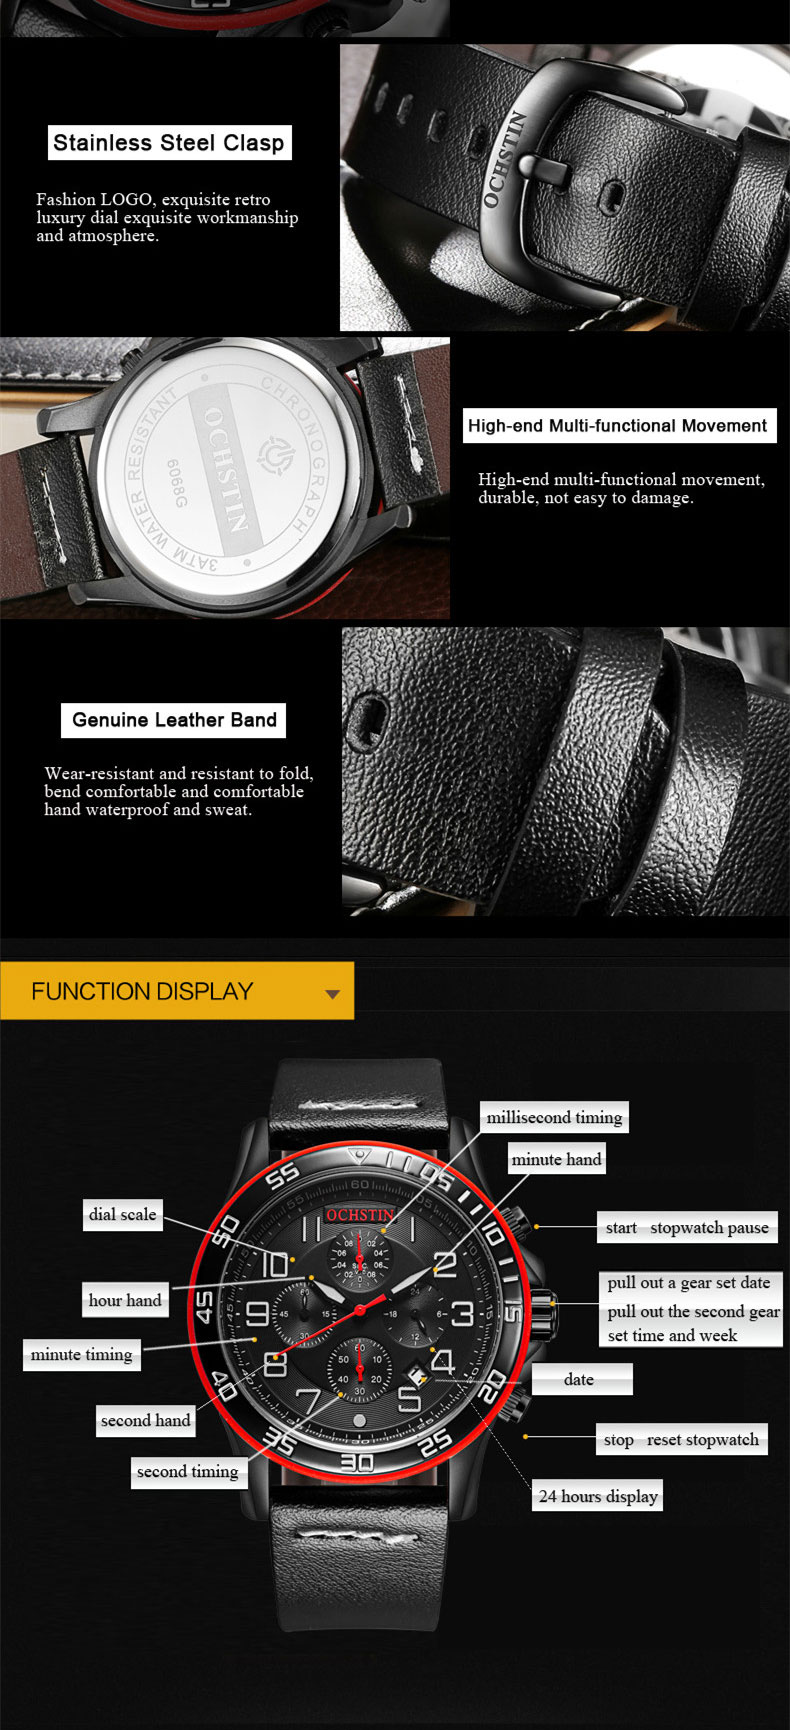 17 Men Watches Luxury Top Brand OCHSTIN Sports Chronograph Fashion Male Dress Leather Belt Clock Waterproof Quartz Wrist Watch 5